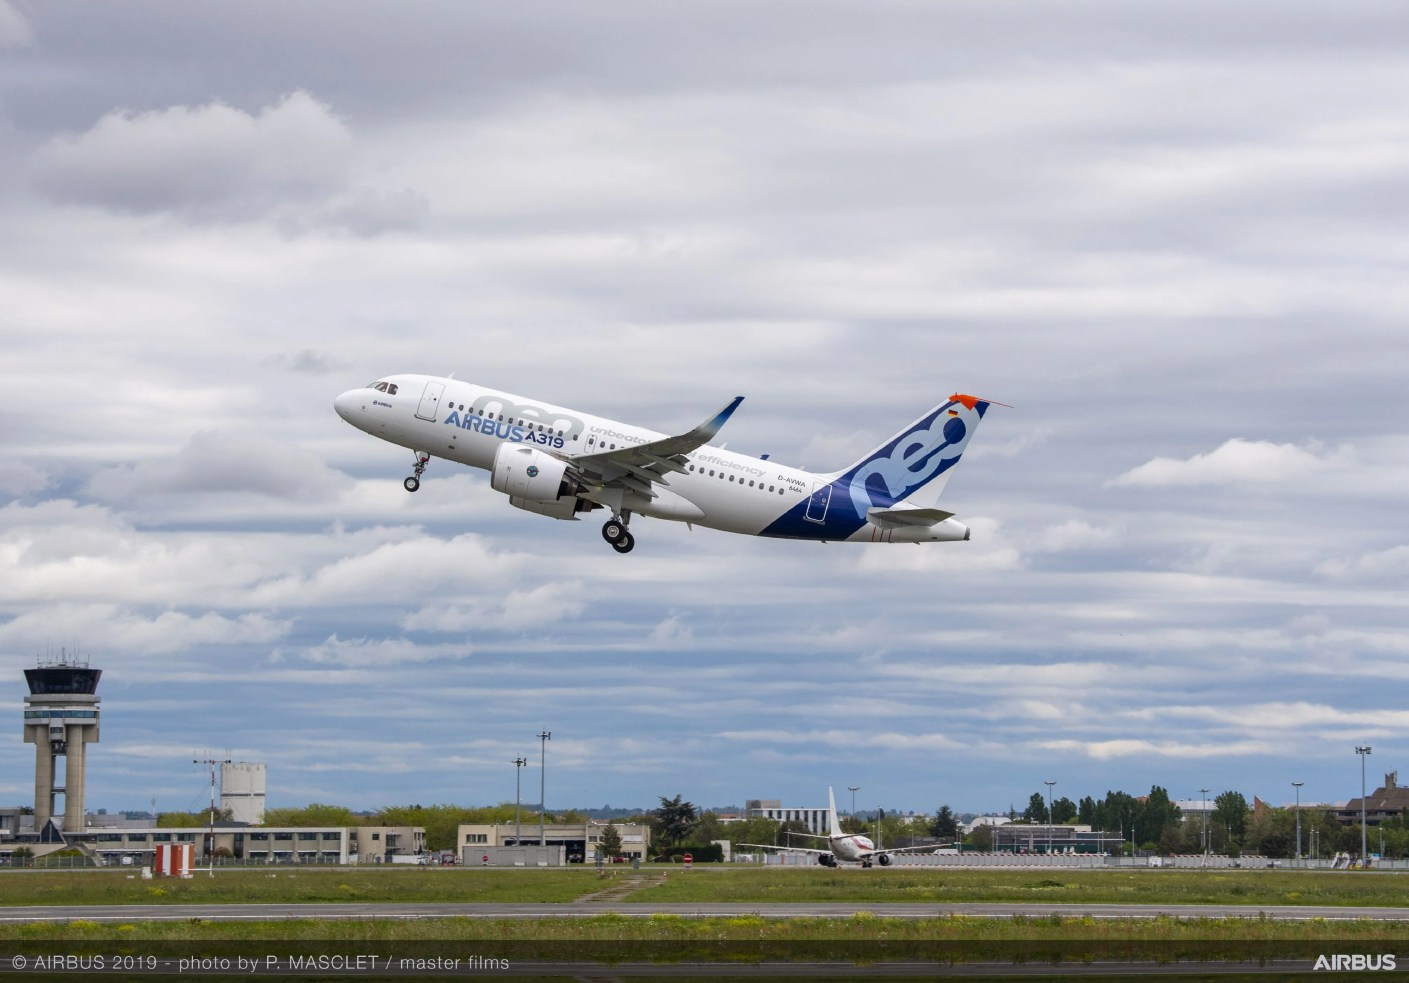 First flight of A319neo with P&W GTF engines. Photo by Airbus.